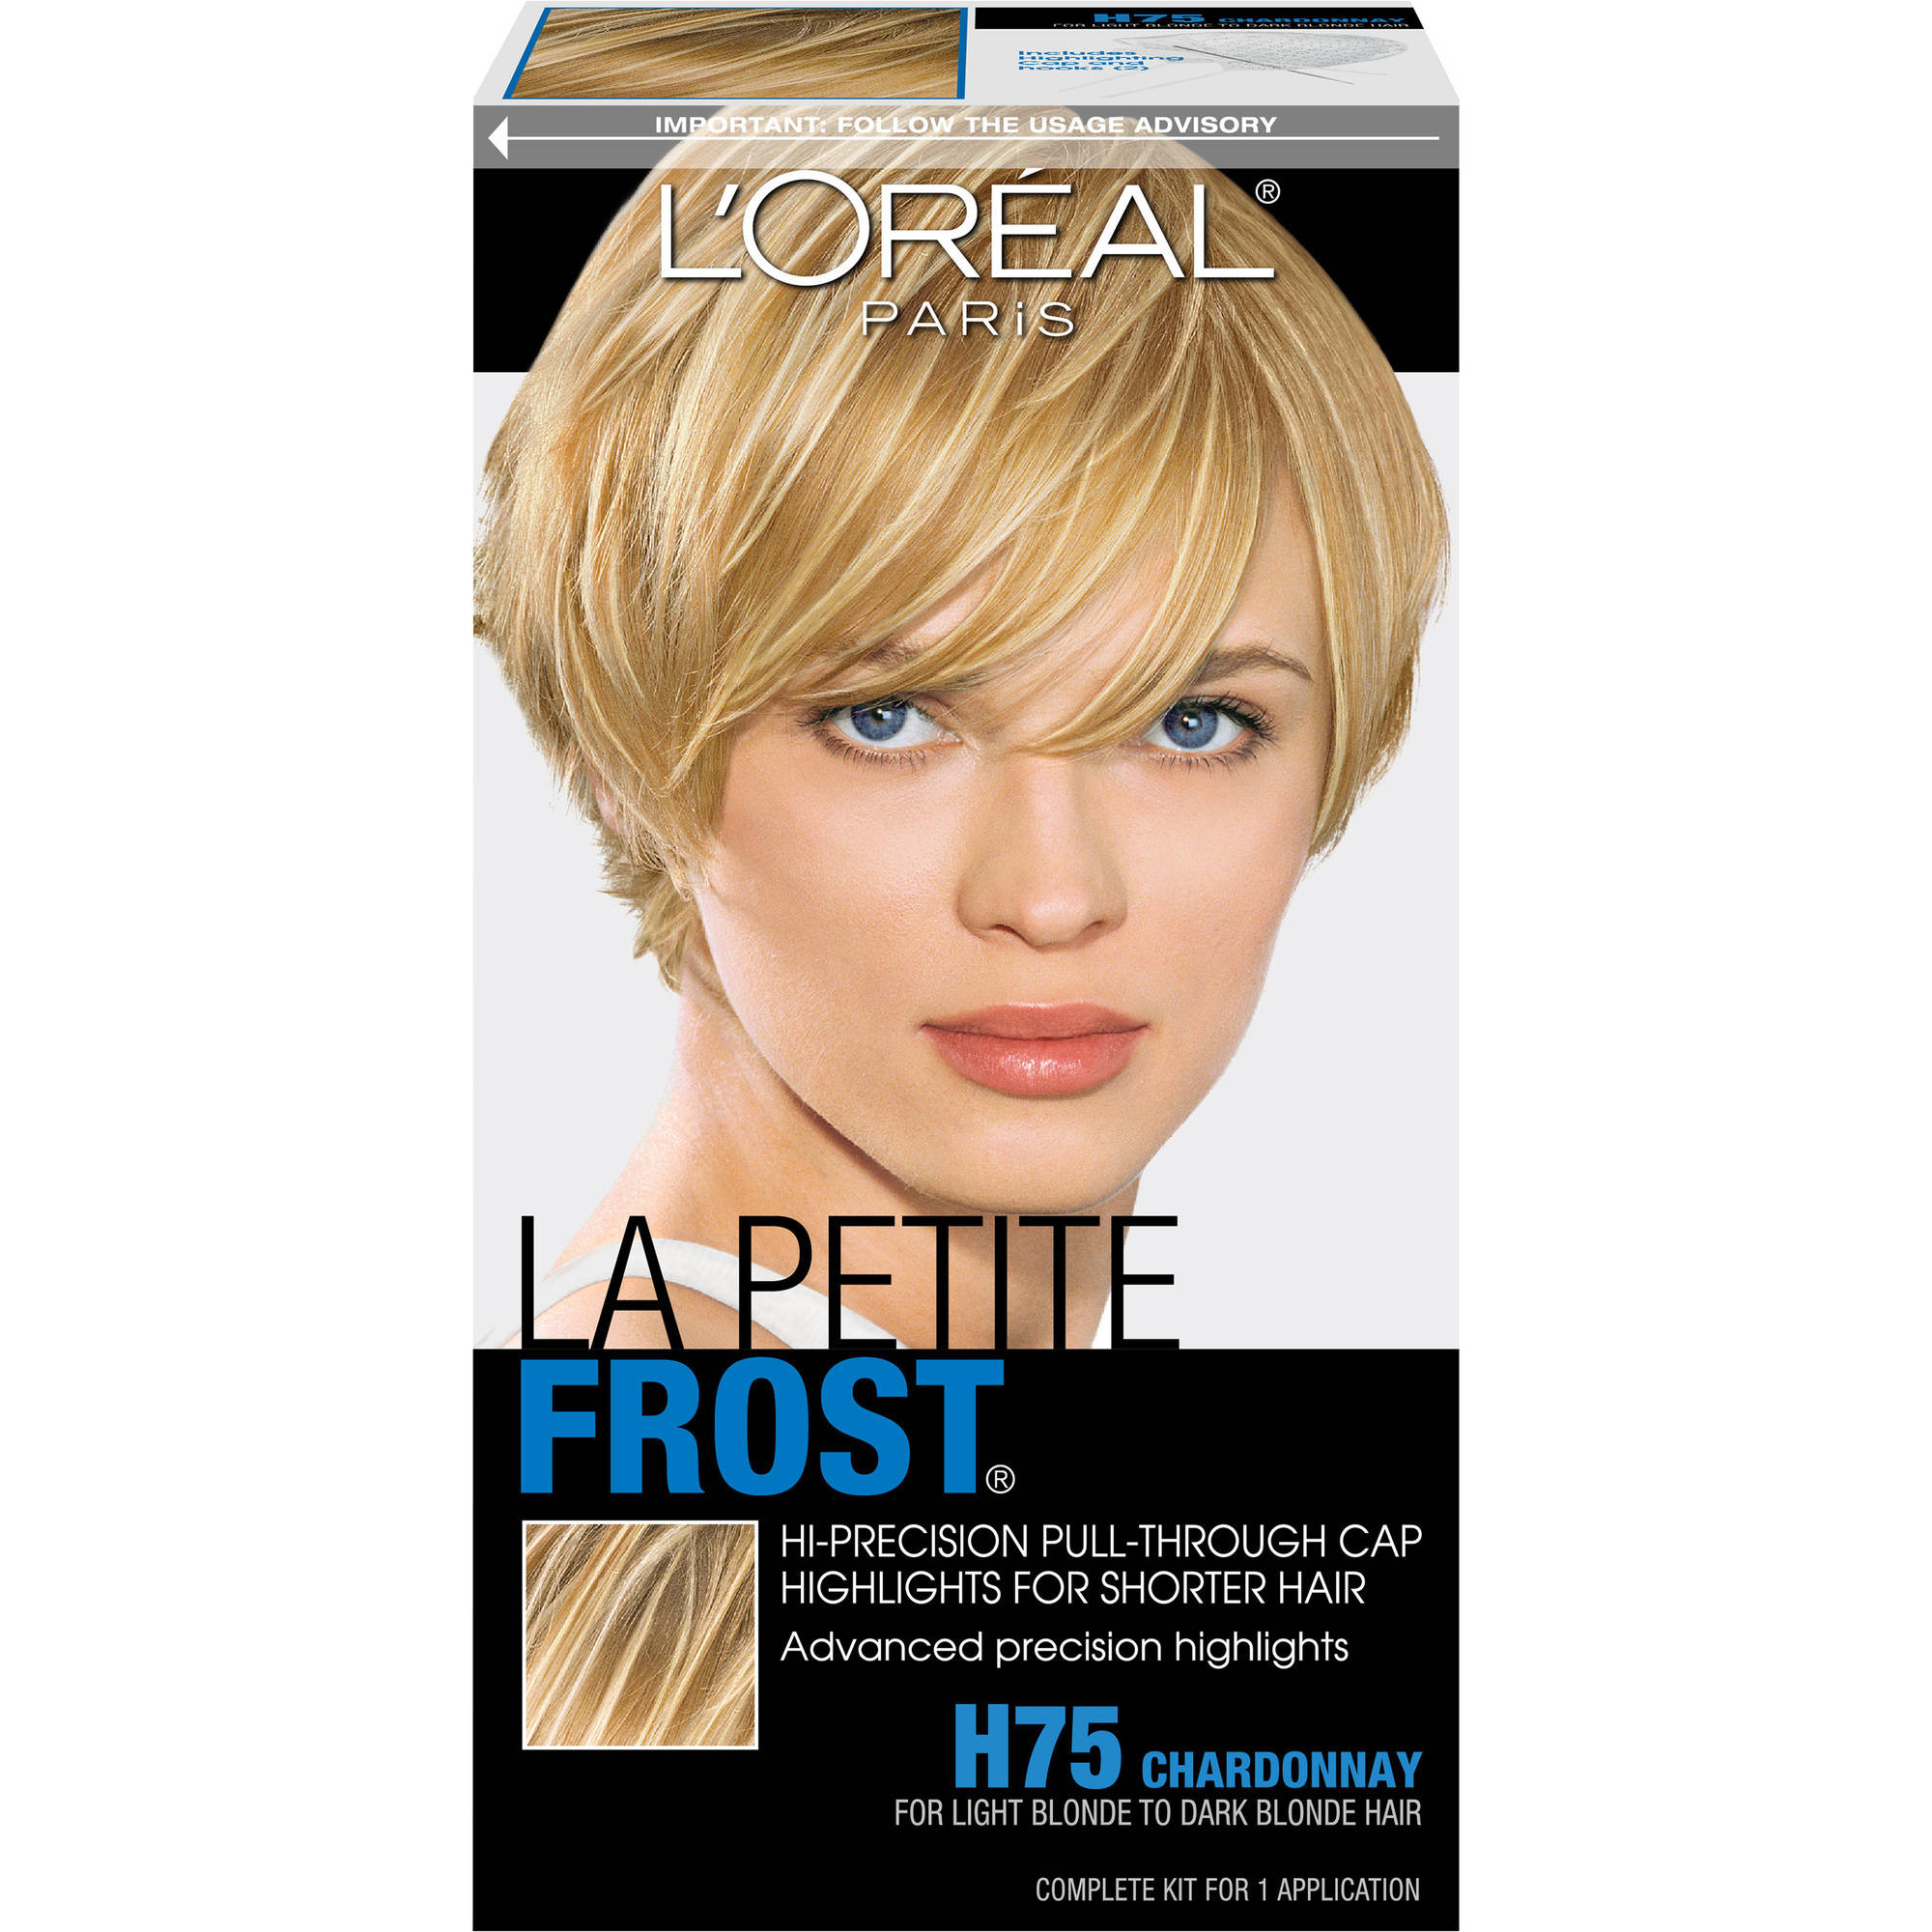 Loreal Paris Le Petite Frost Hi Precision Pull Through Cap